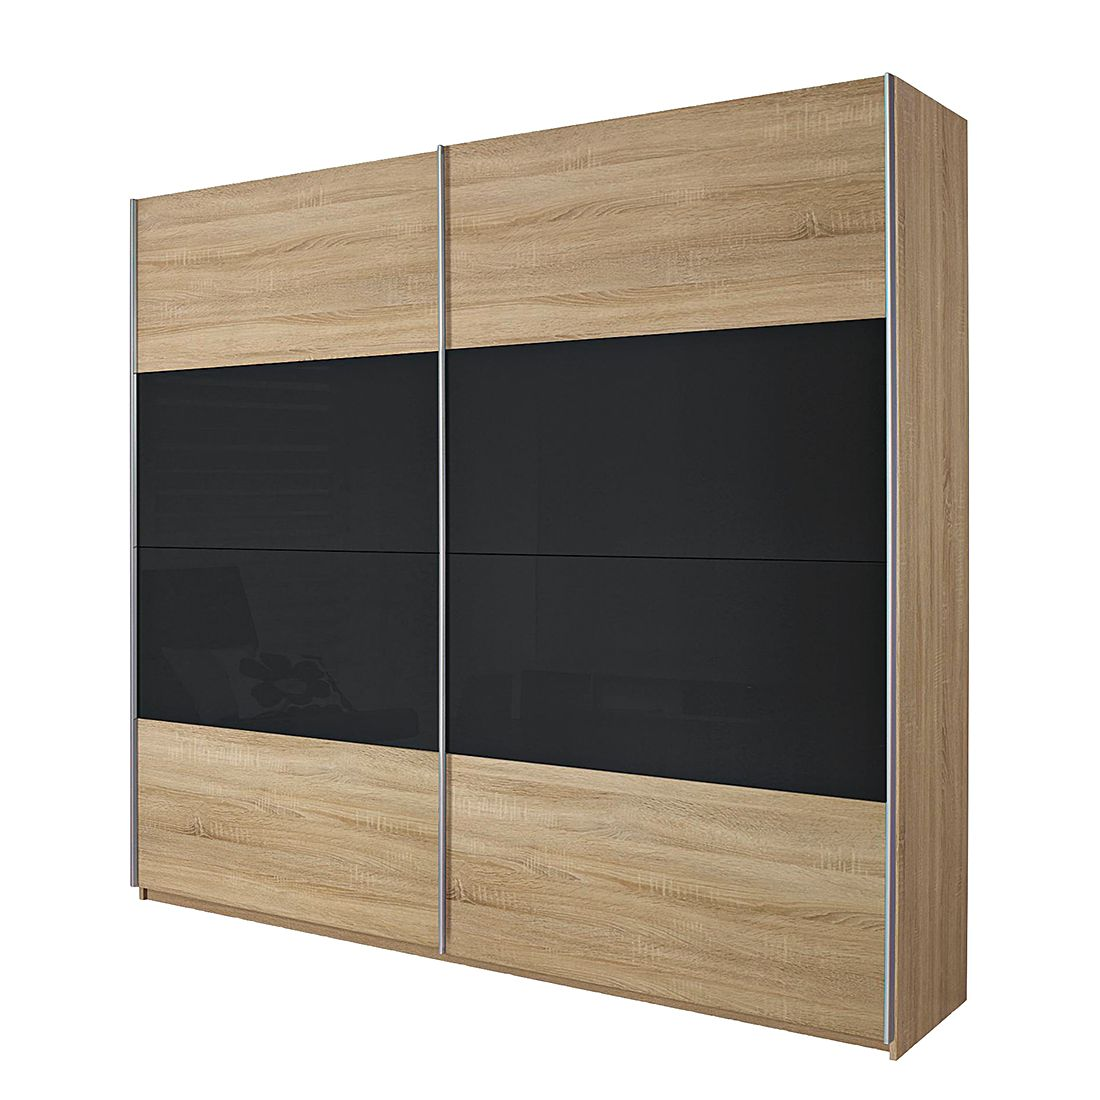 schwebet renschrank quadra eiche sonoma glas basalt schrankbreite 226 cm 2 t rig. Black Bedroom Furniture Sets. Home Design Ideas